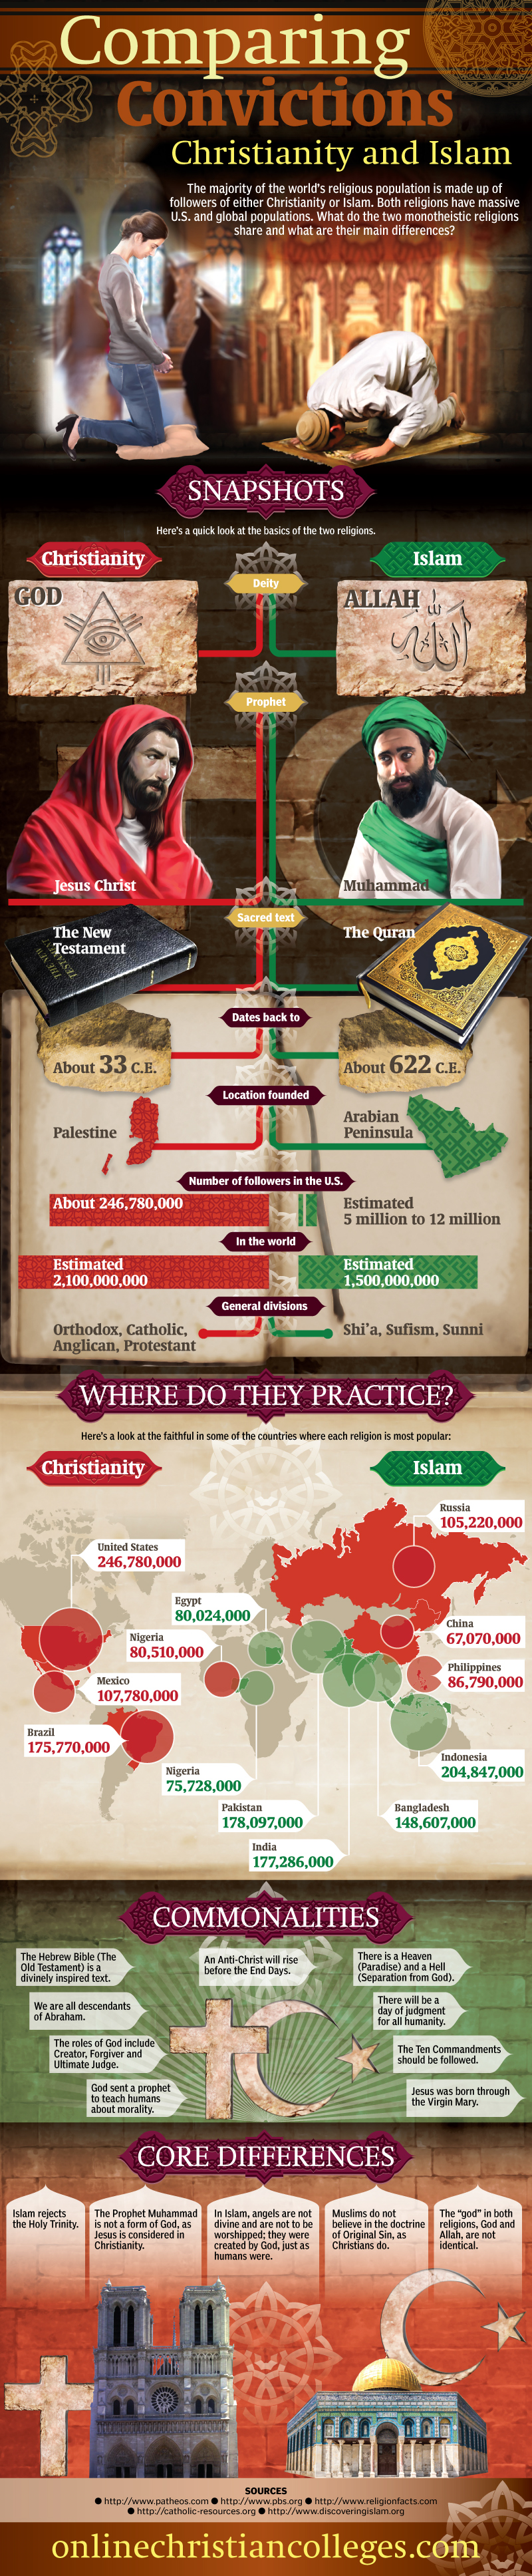 Christianity-compared-to-Islam